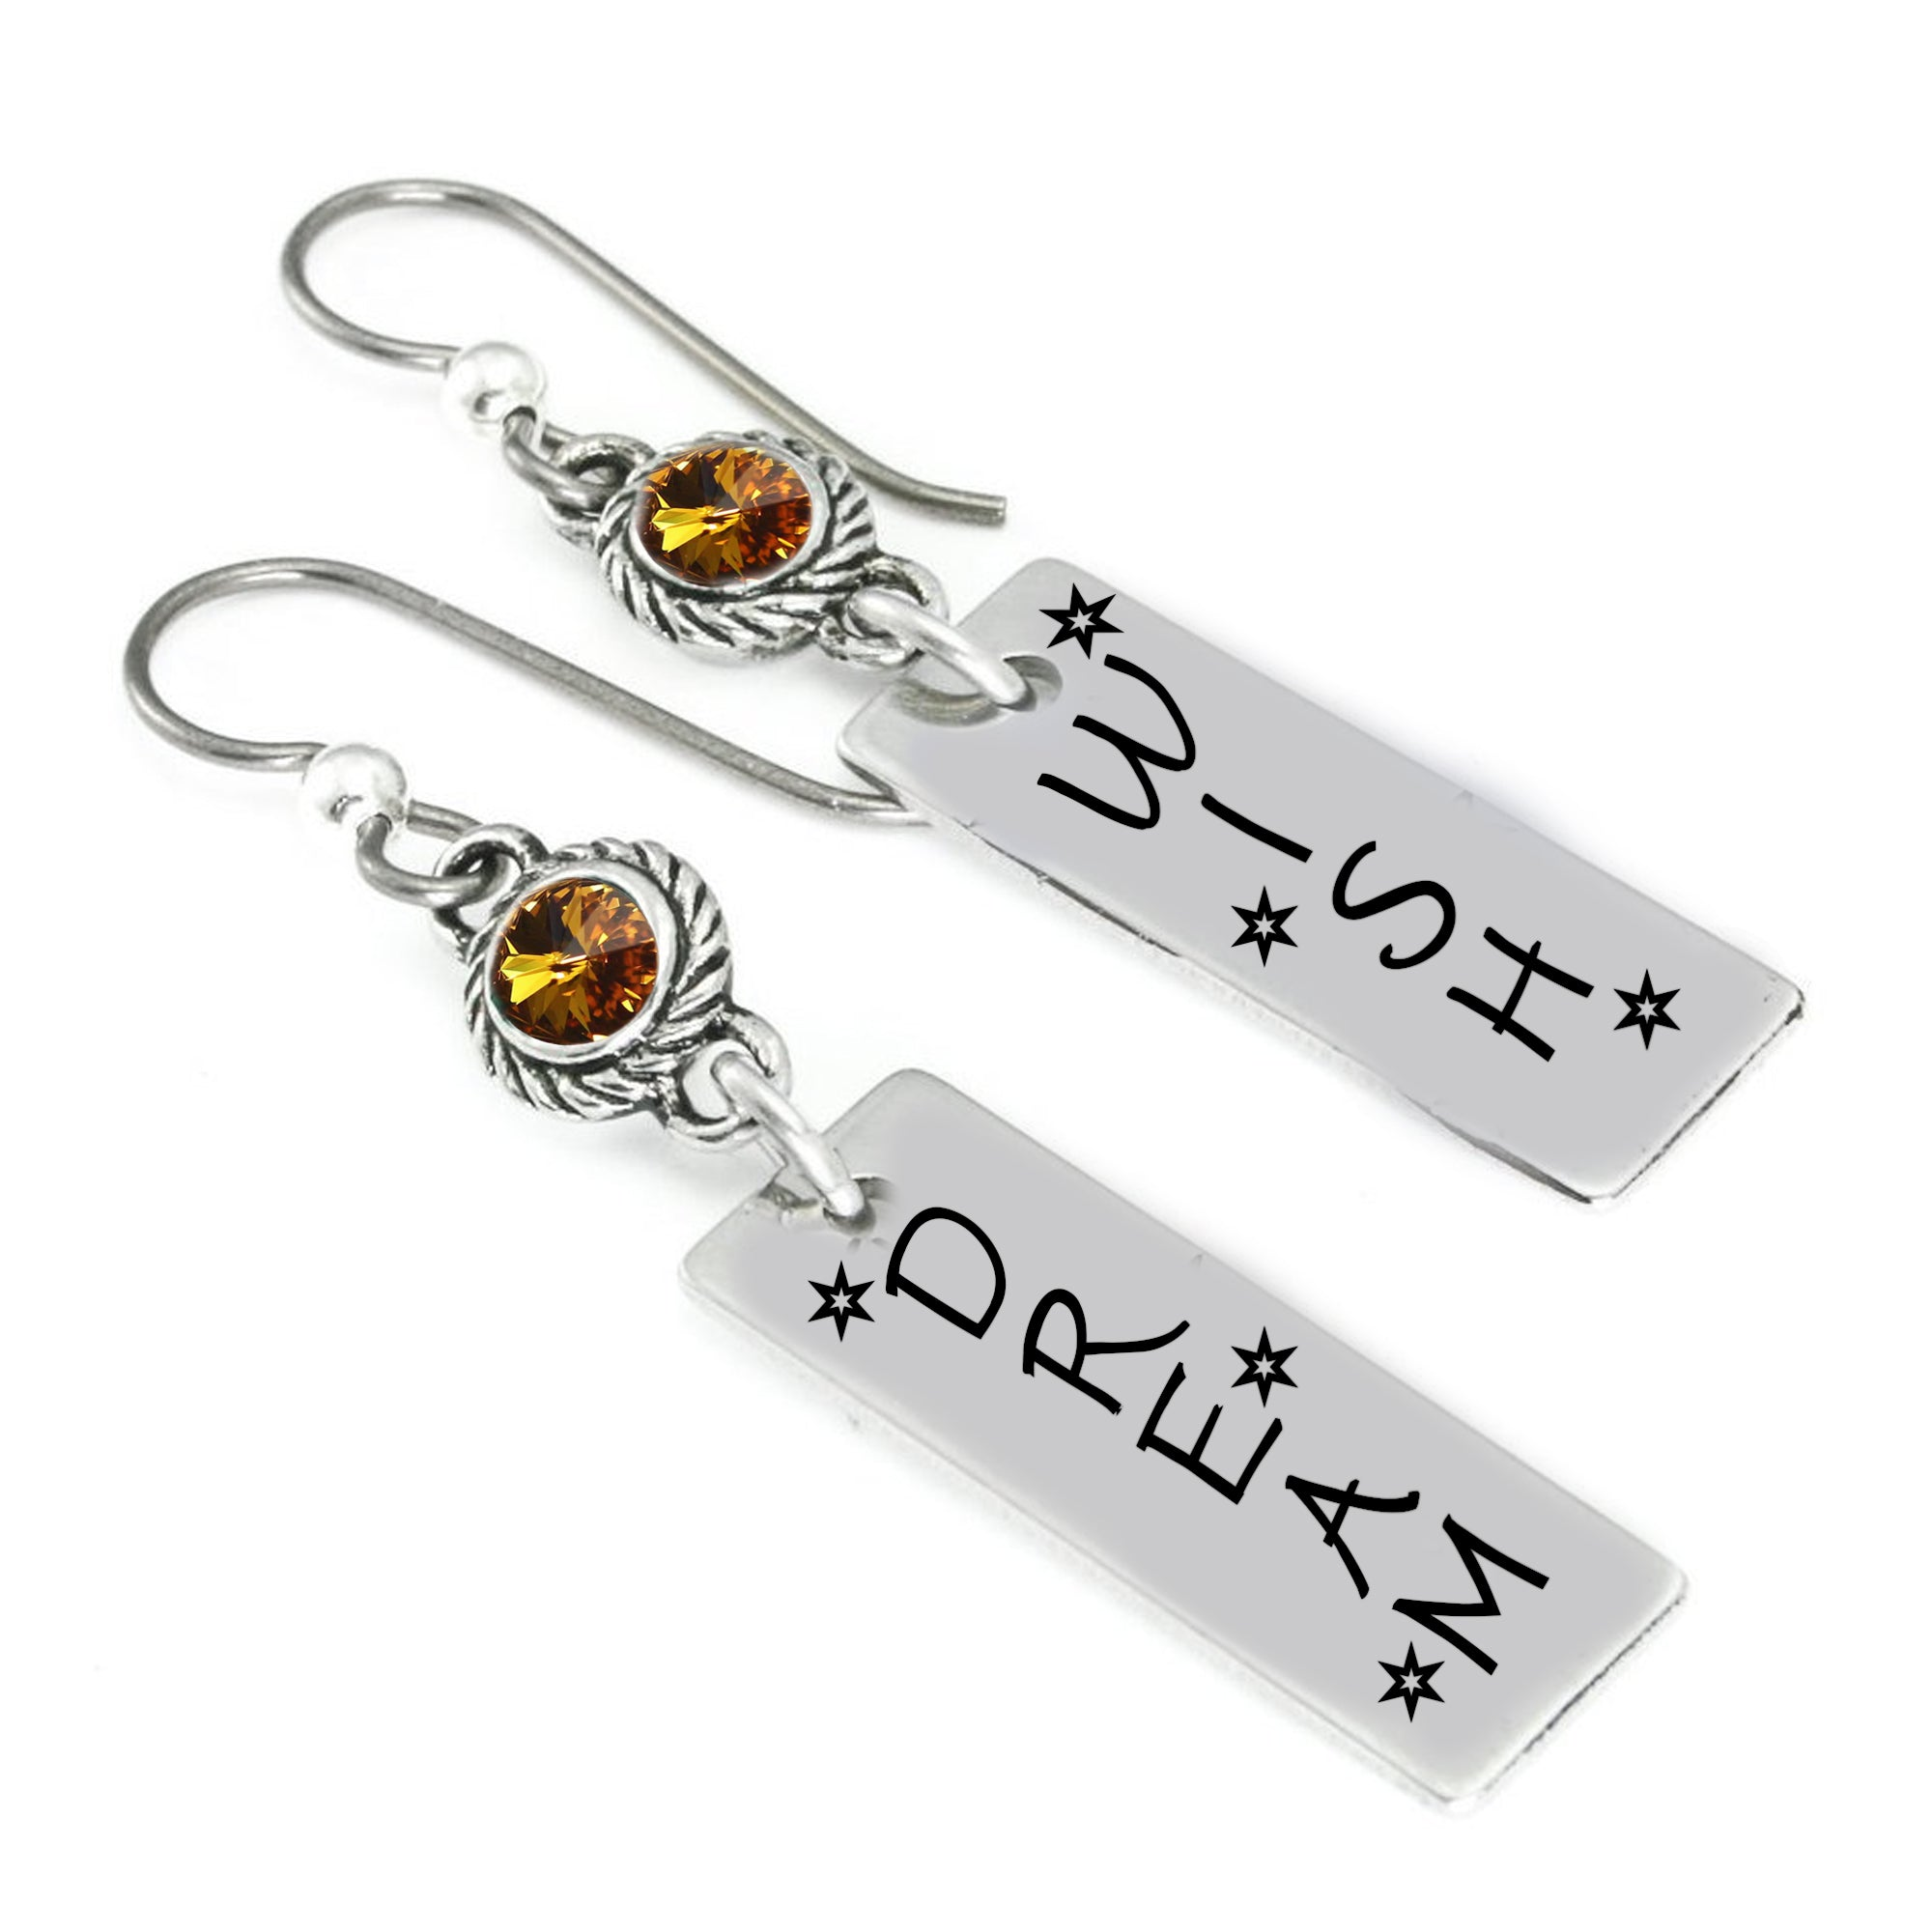 7c5fa3923a1281 Crystal Birthstone Earrings Handcrafted to never tarnish with Swarovski  crystals – Blackberry Designs Jewelry